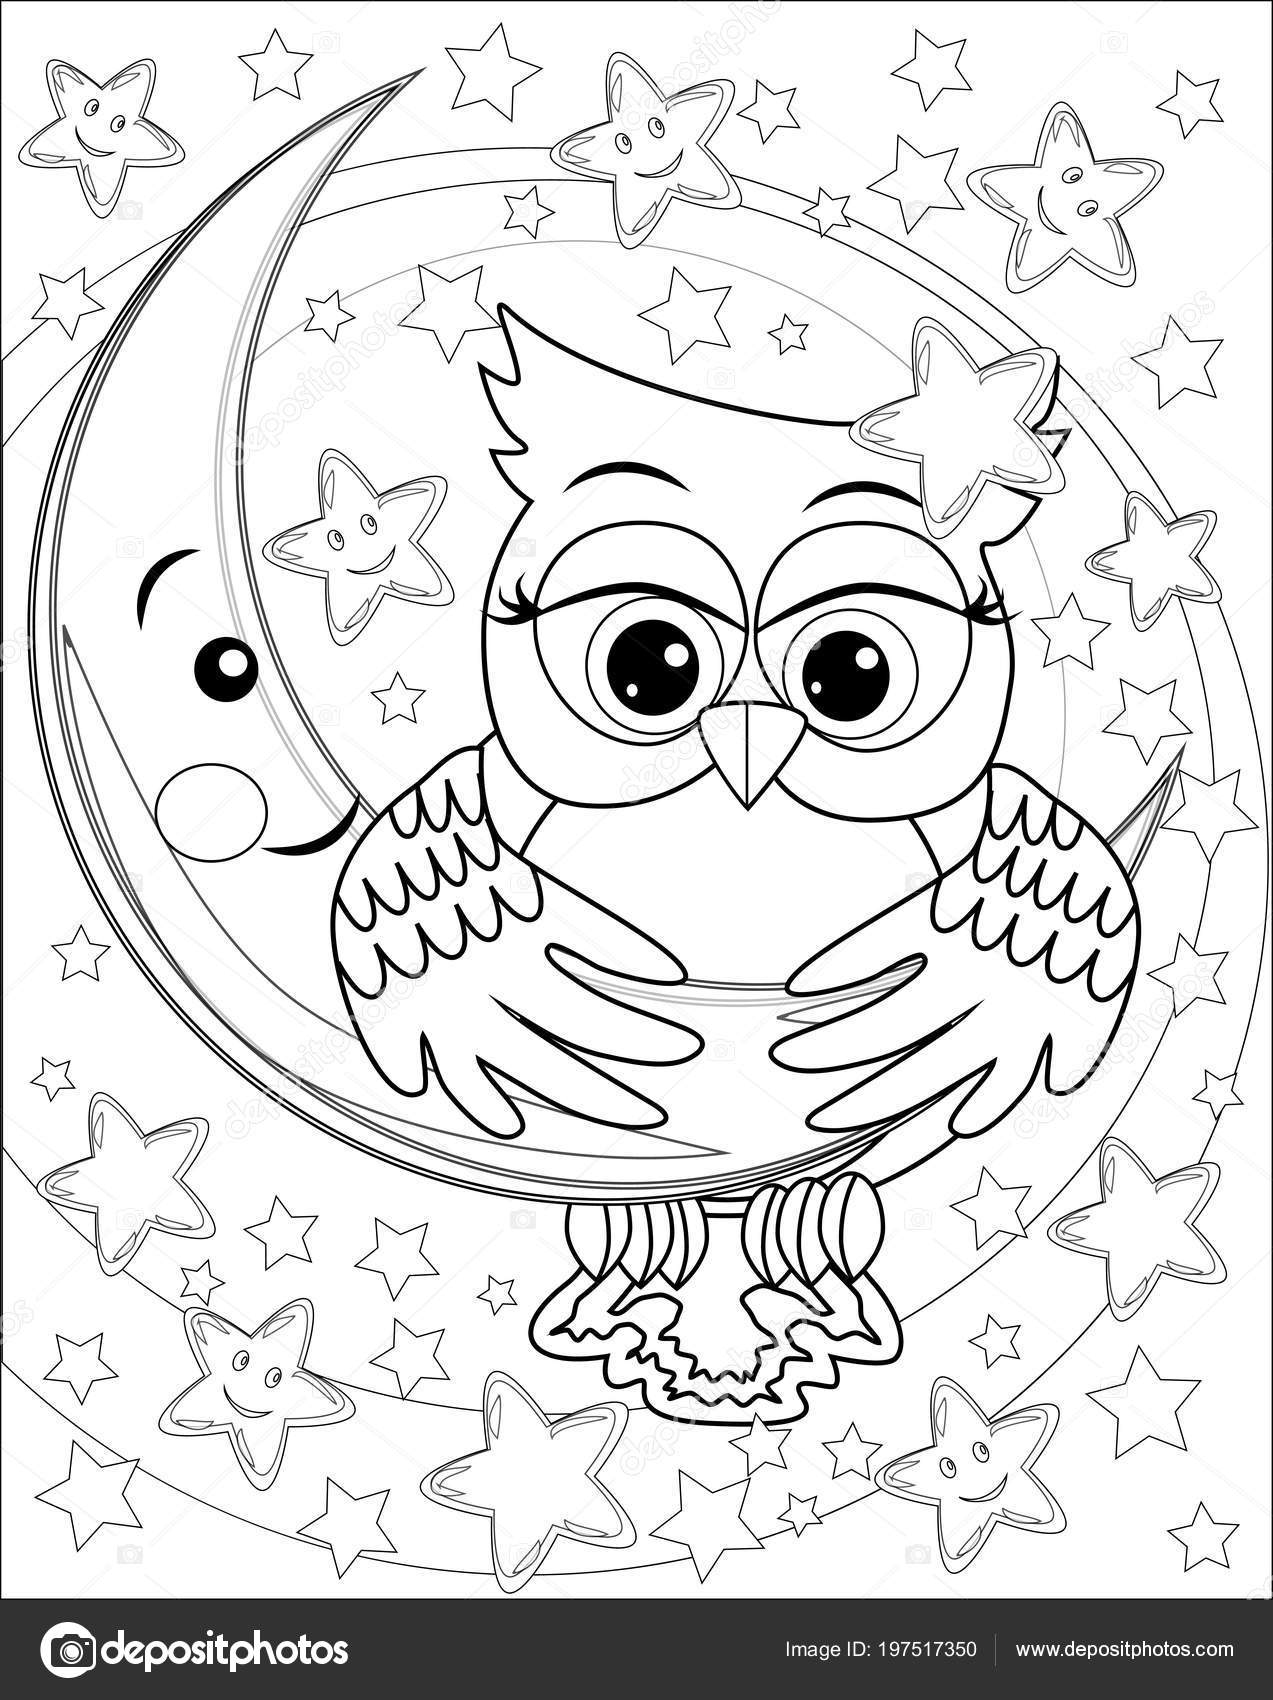 Coloring Book Adult Older Children Coloring Page Owl Moon Stars